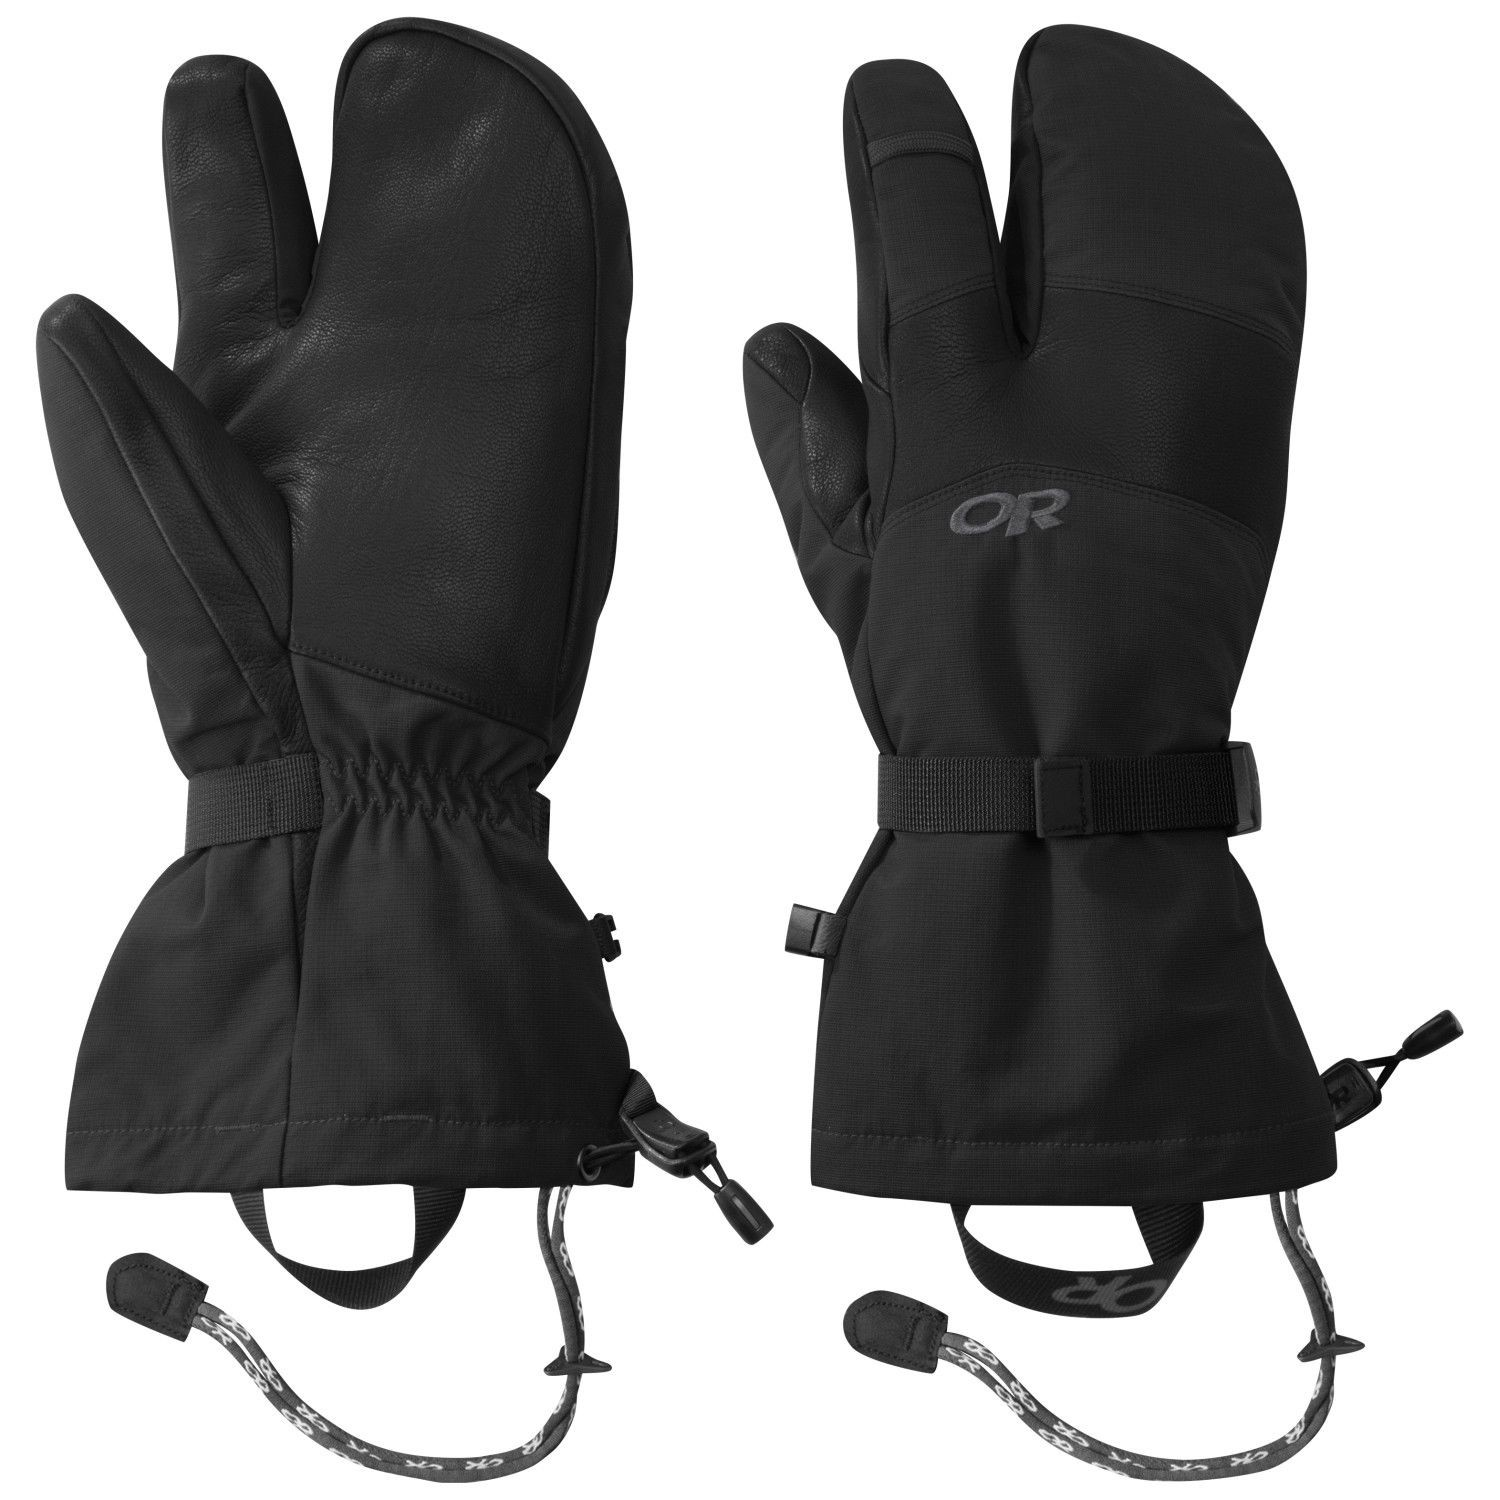 Outdoor Research Highcamp 3Finger, guantes-manoplas tridedos